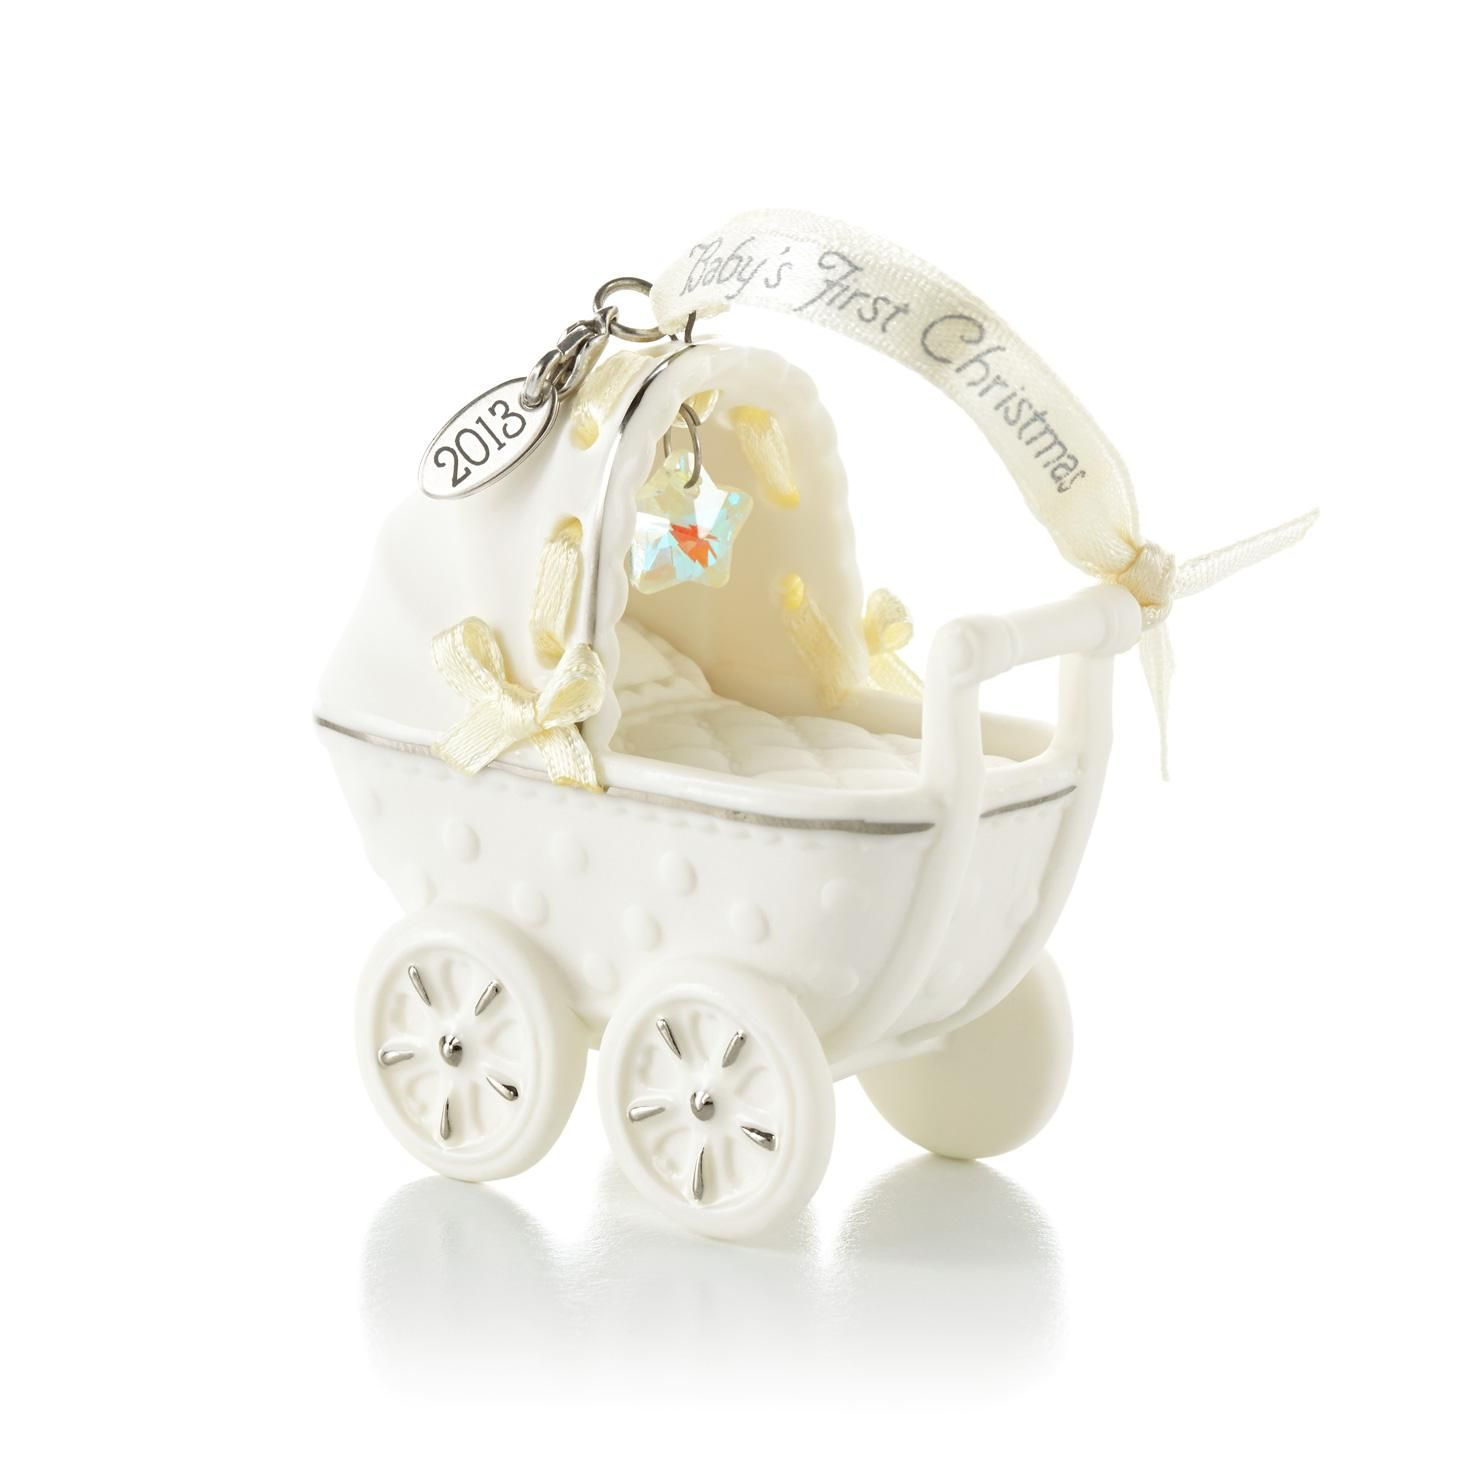 Babys First Christmas Carriage  Baby Keepsake Ornament - Hallmark